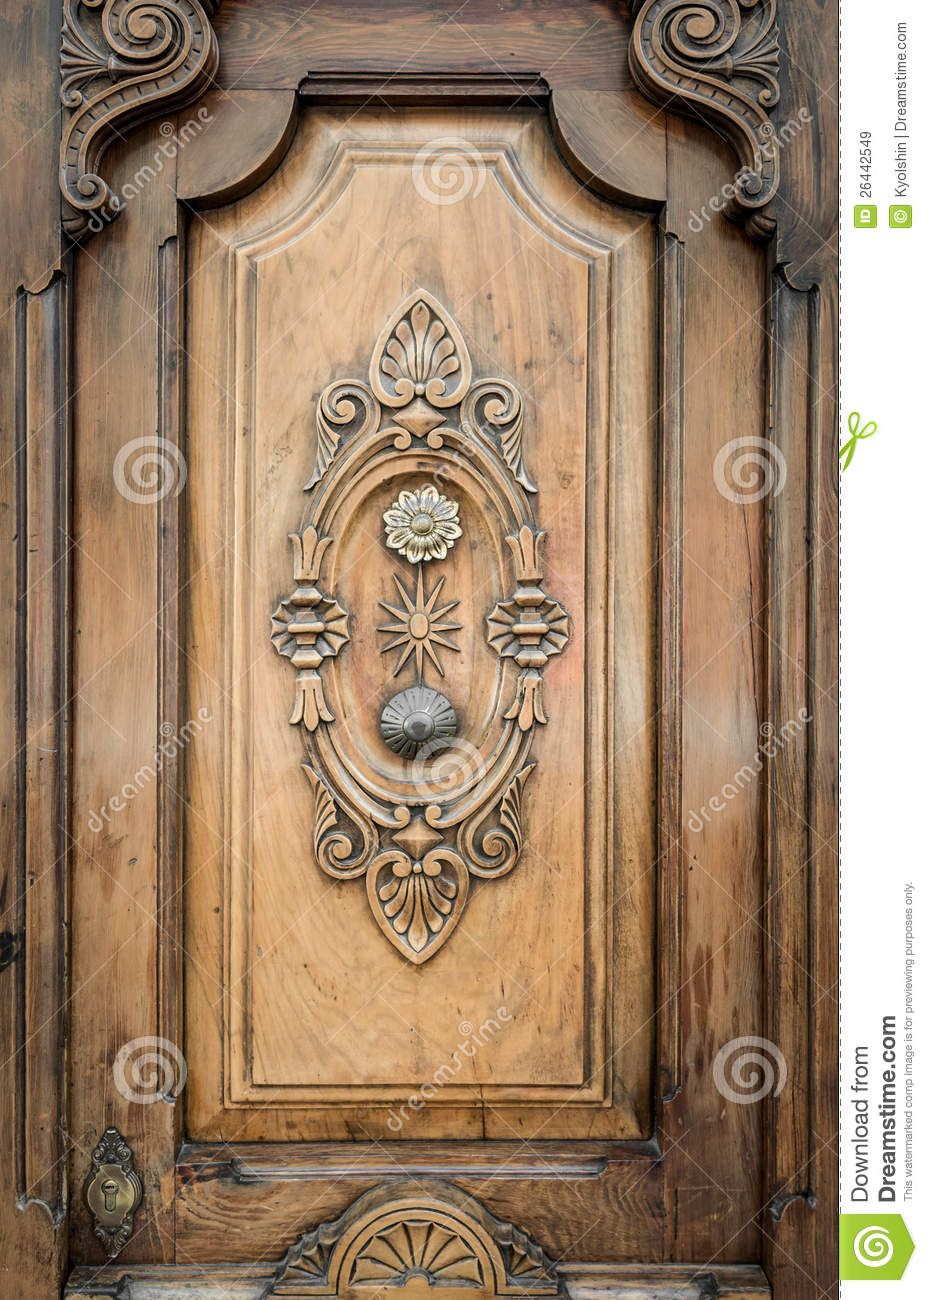 Old Door Of Wood With Patterns Carved On It Royalty Free Stock